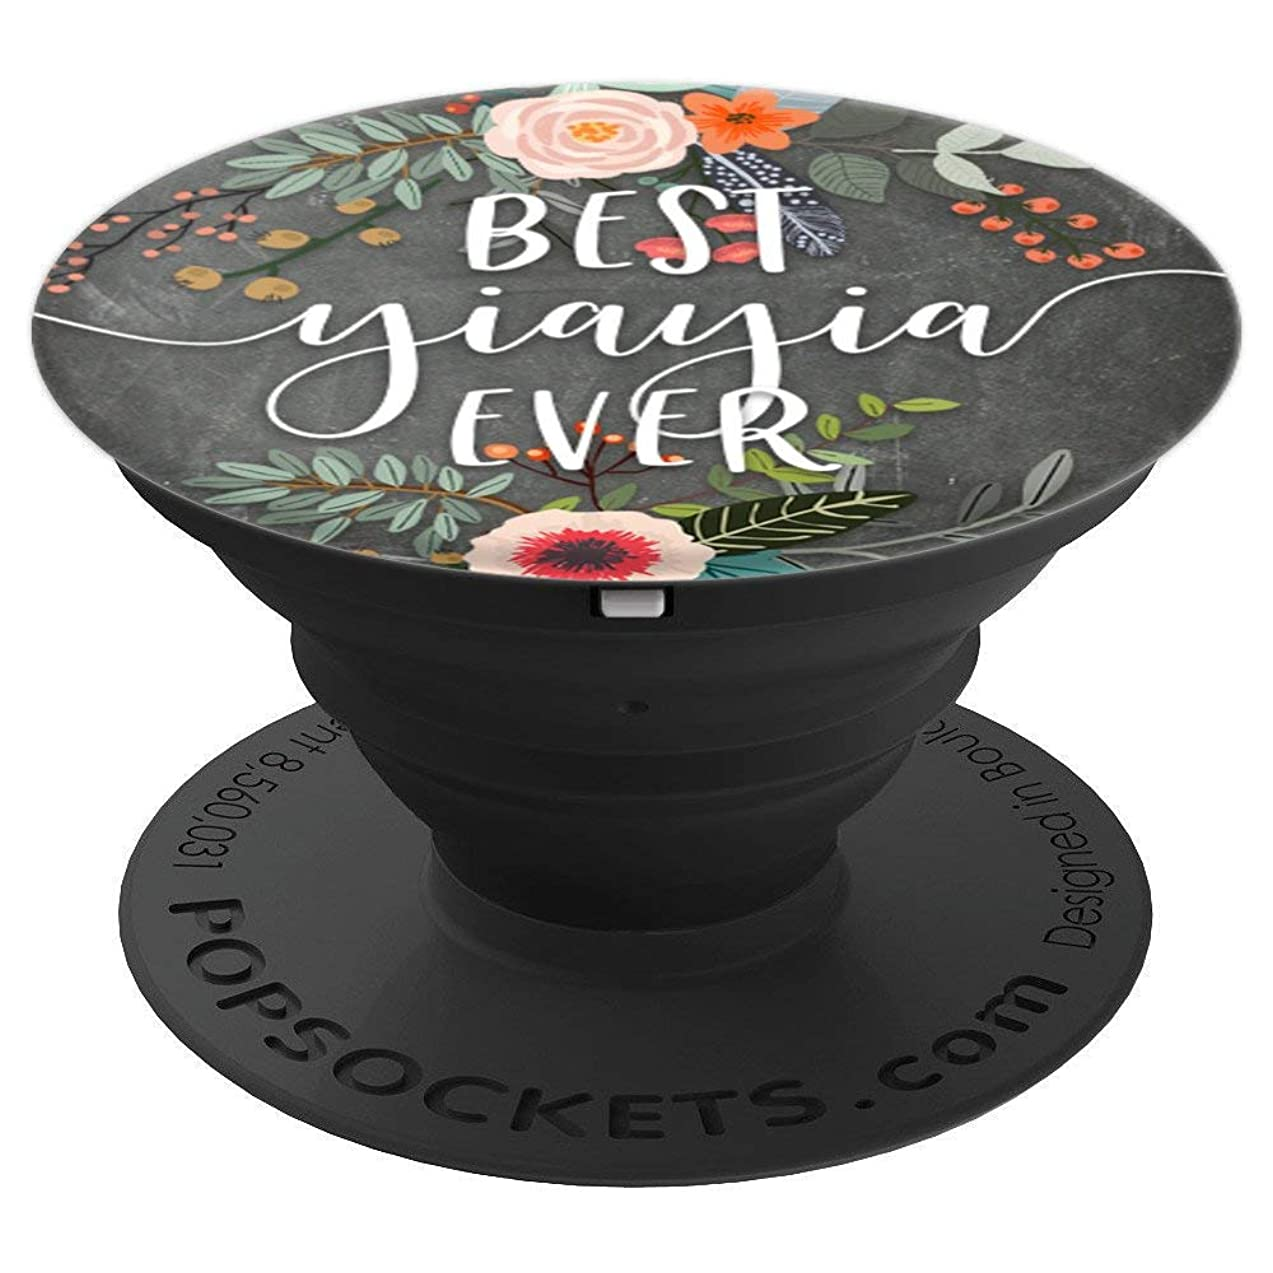 Best Yiayia Ever - Cute Mother's Day Gifts for Grandma - PopSockets Grip and Stand for Phones and Tablets